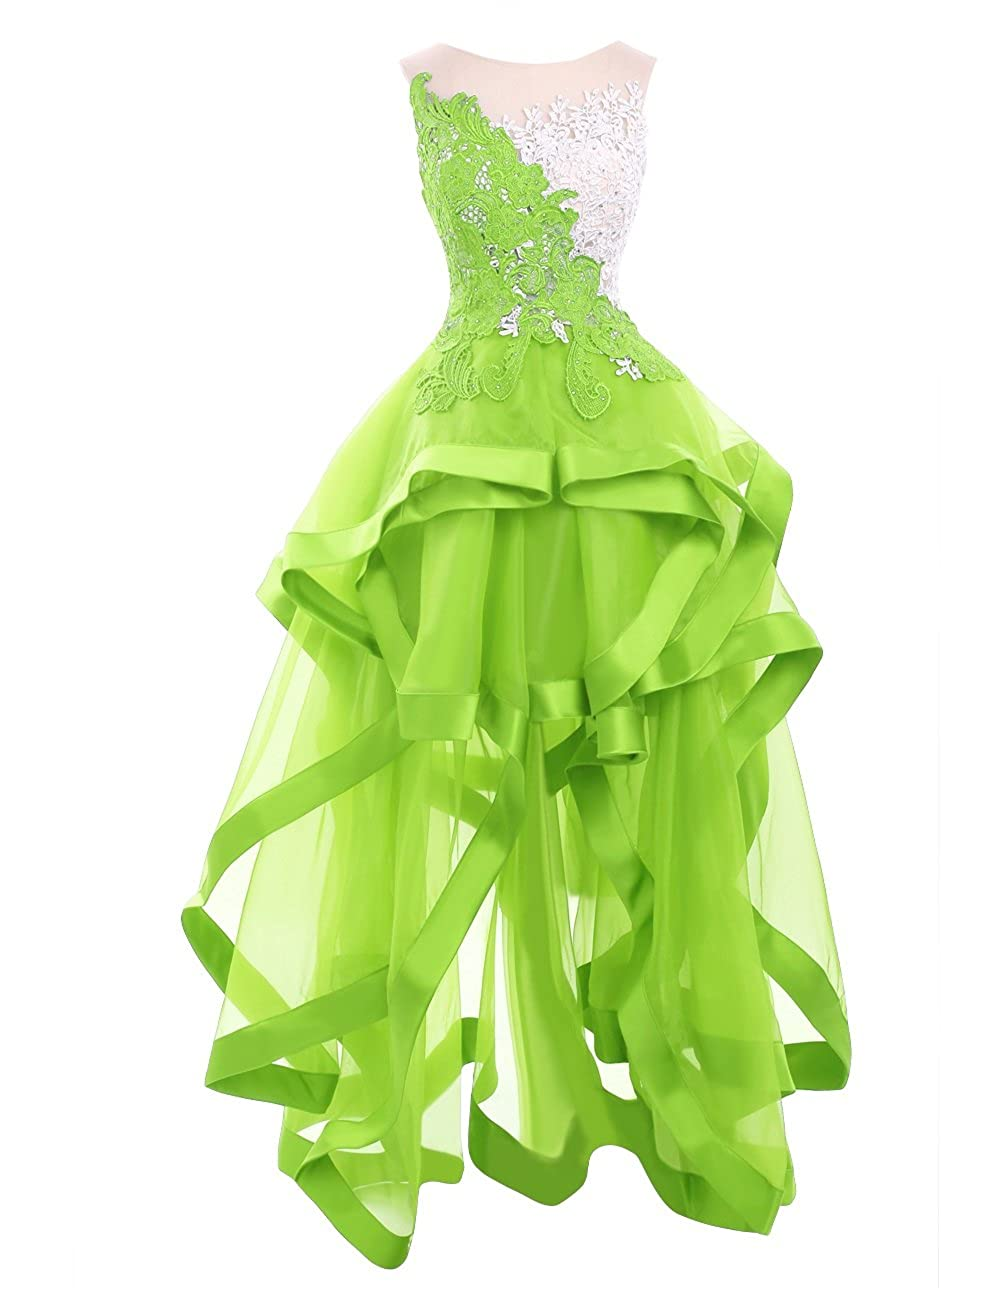 Lime Green Riveroy Women Formal Lace High Low Evening Dress See Through Ruffles Ball Gown Prom Party Dress(17 colors)